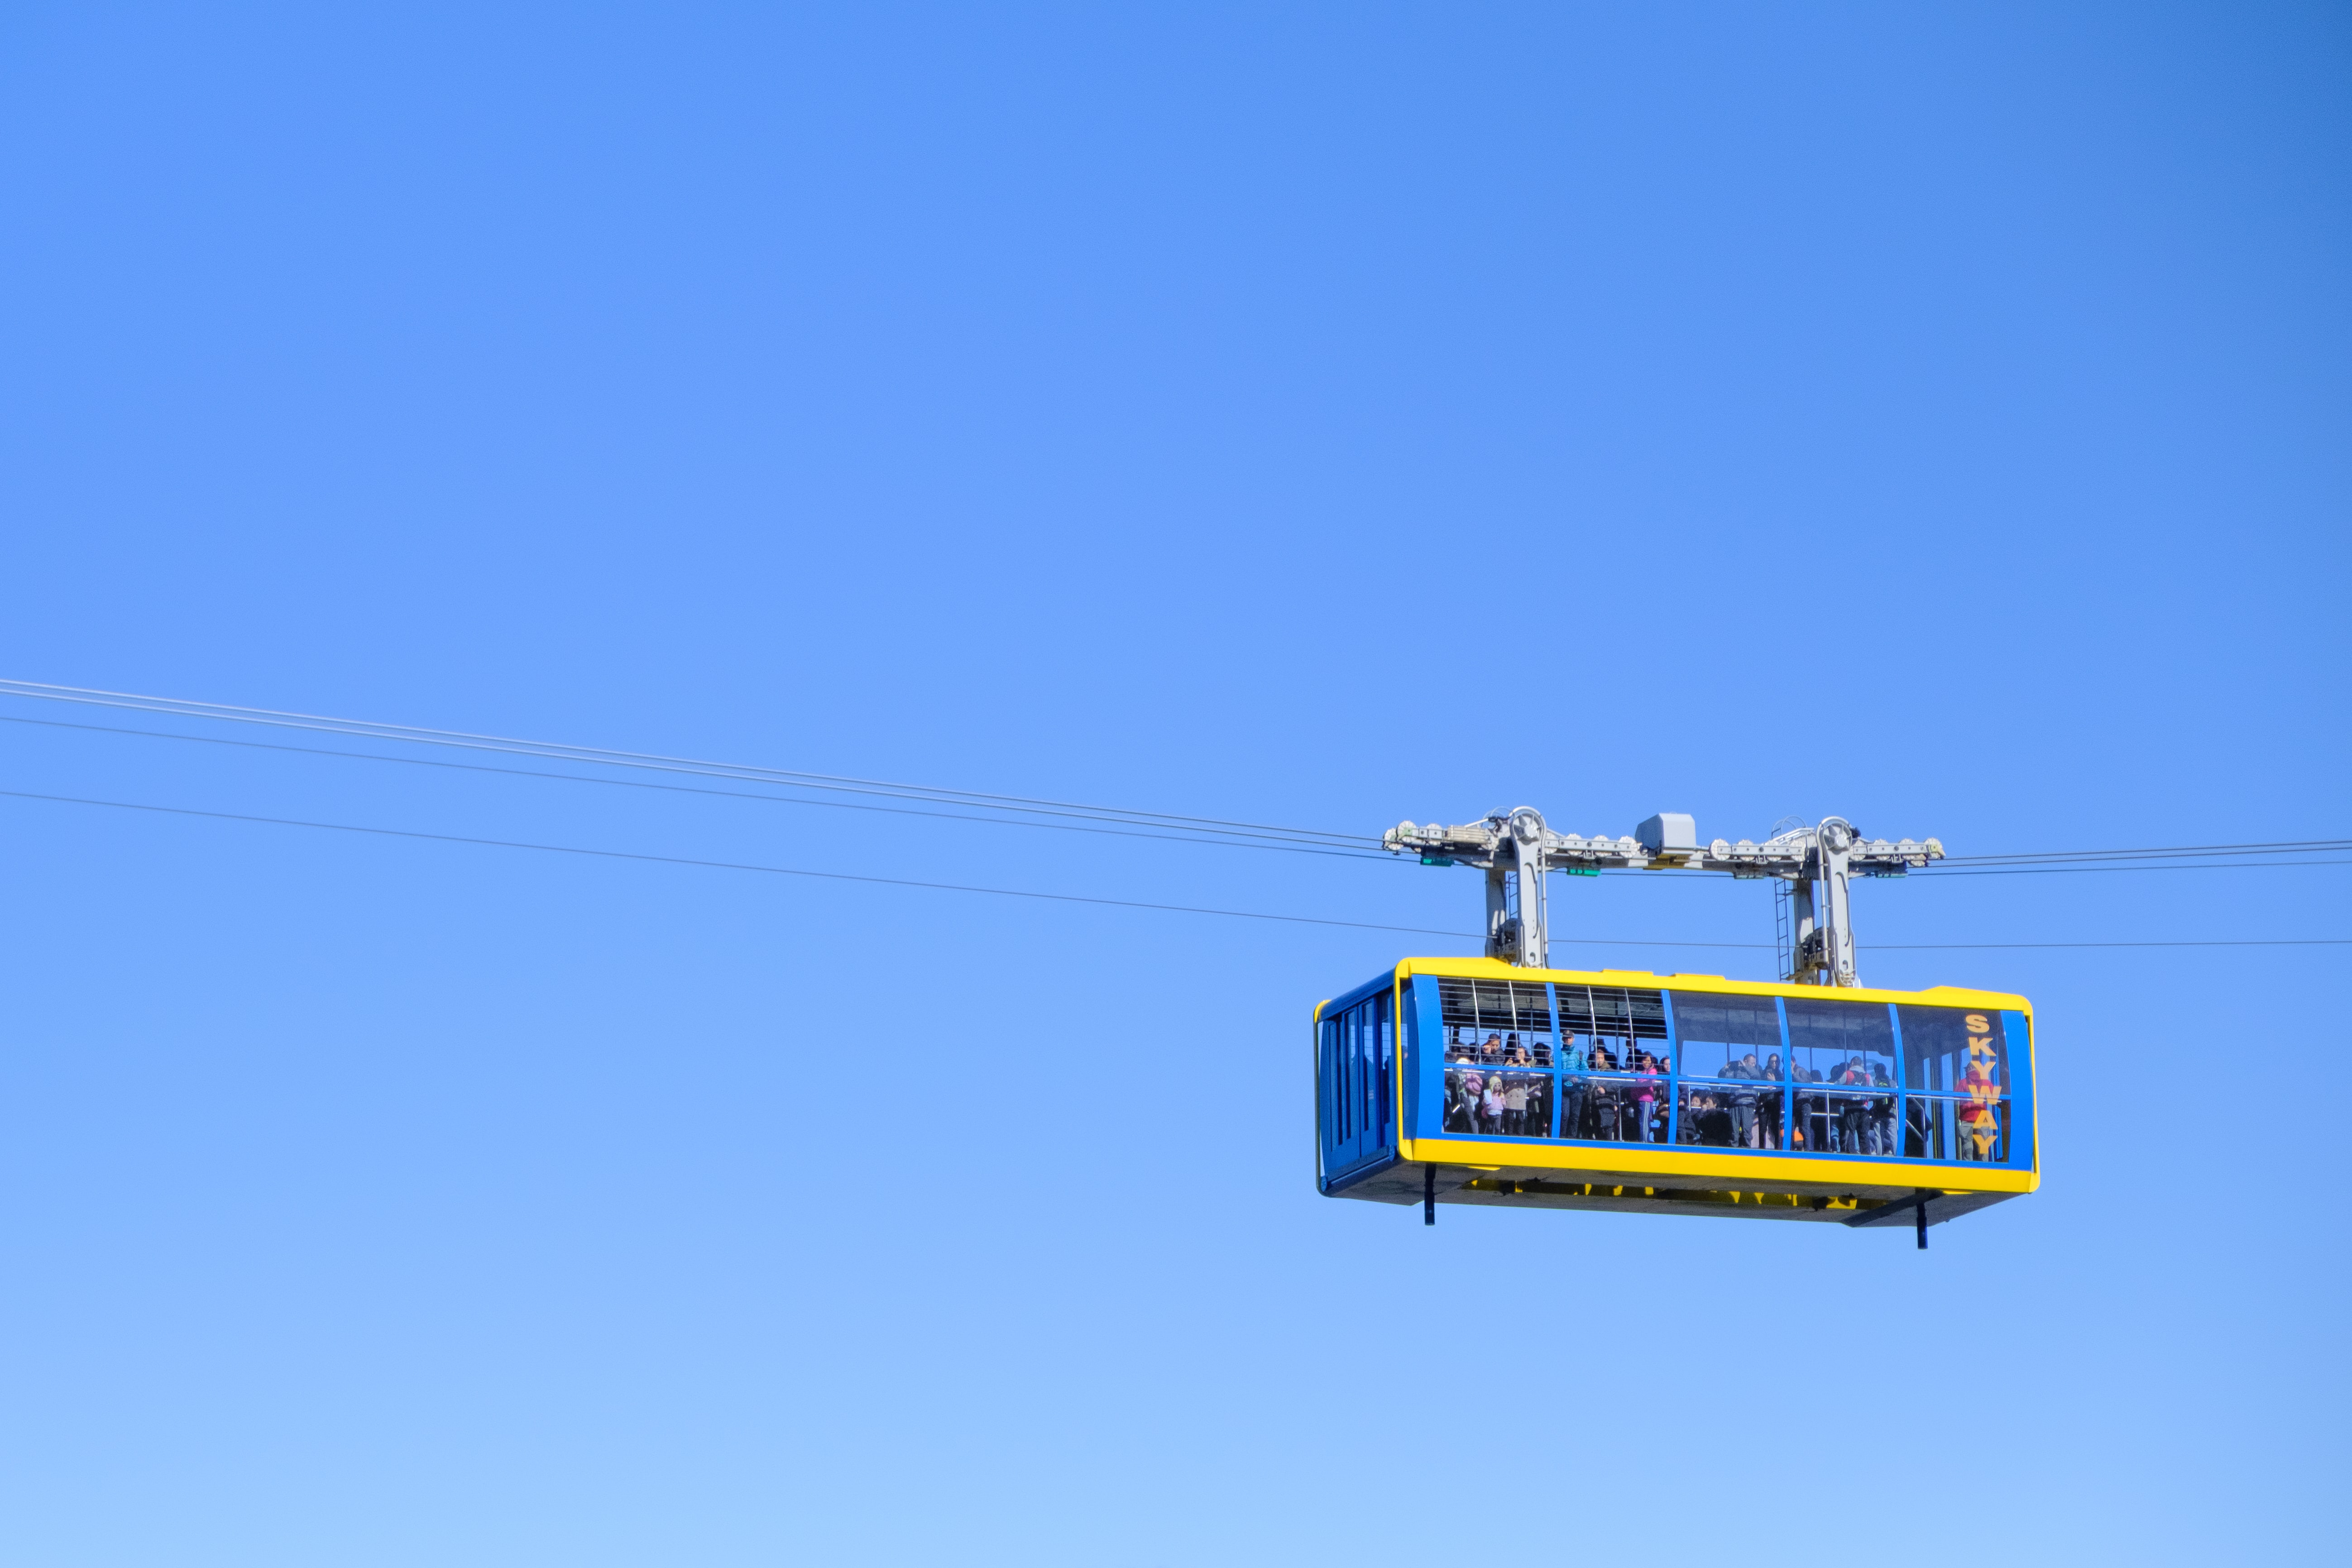 yellow and black cable car under blue sky during daytime